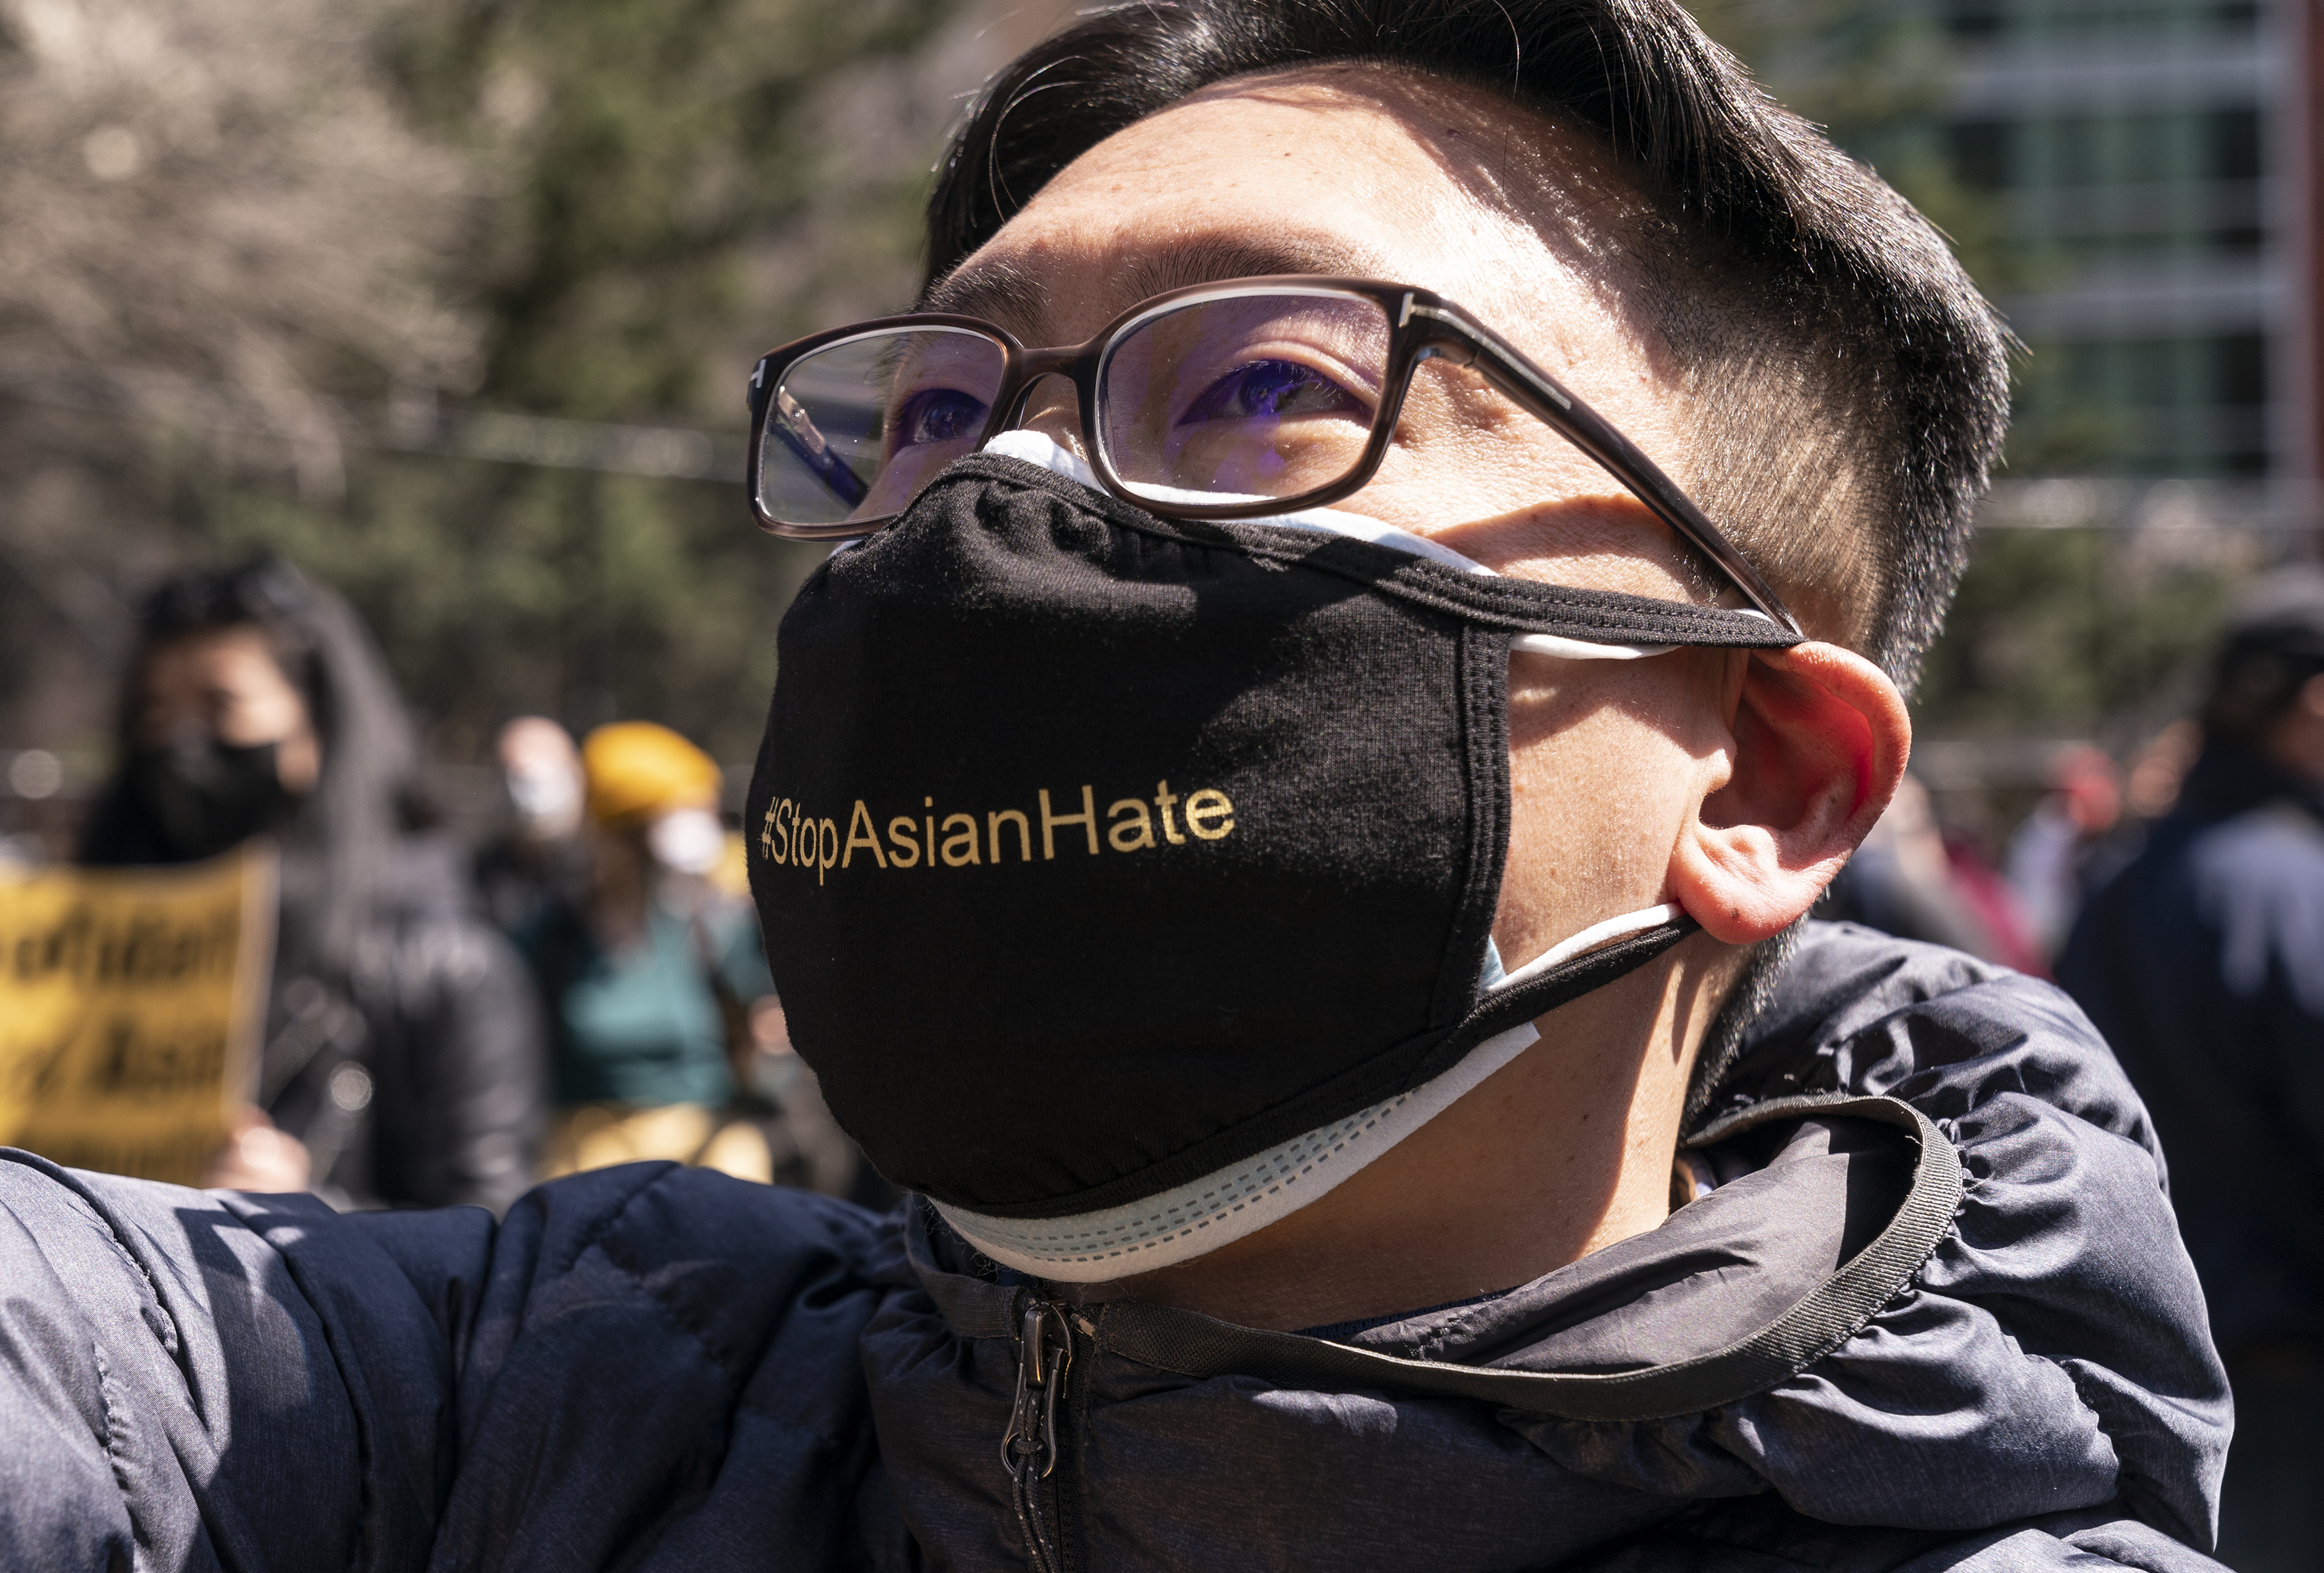 www.brookings.edu: Why Democrats and Republicans would benefit from hate crime protections for Asian Americans